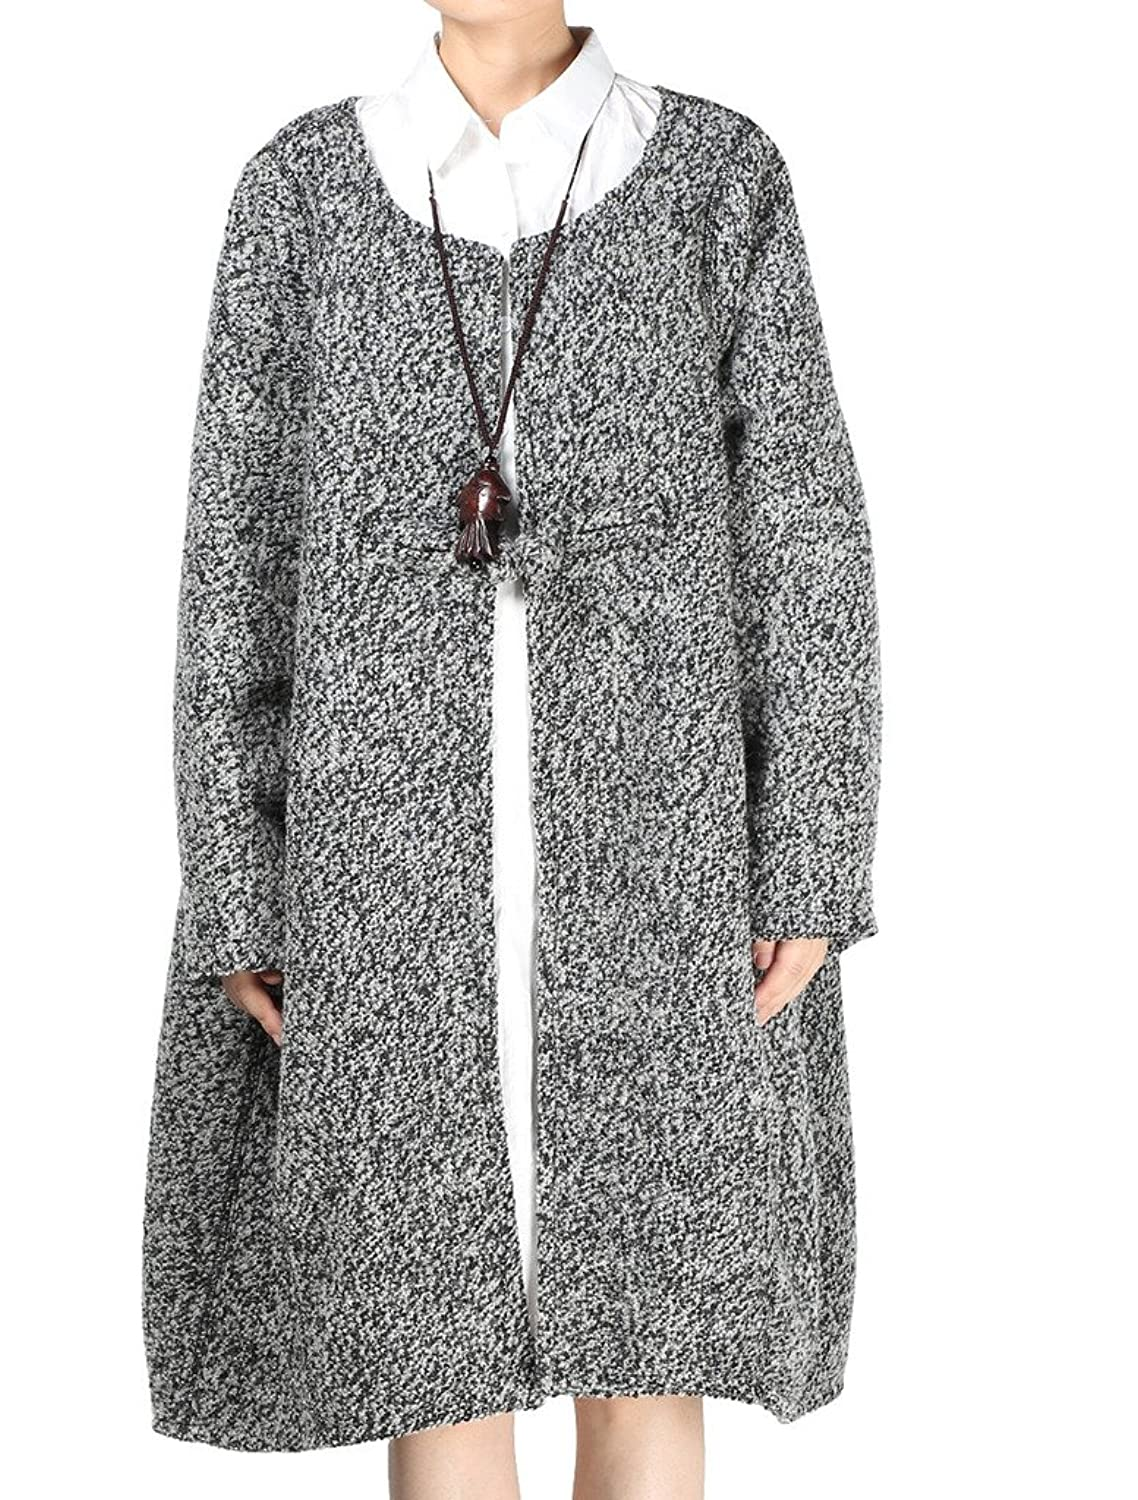 MatchLife Women's Winter Frog Button Coat